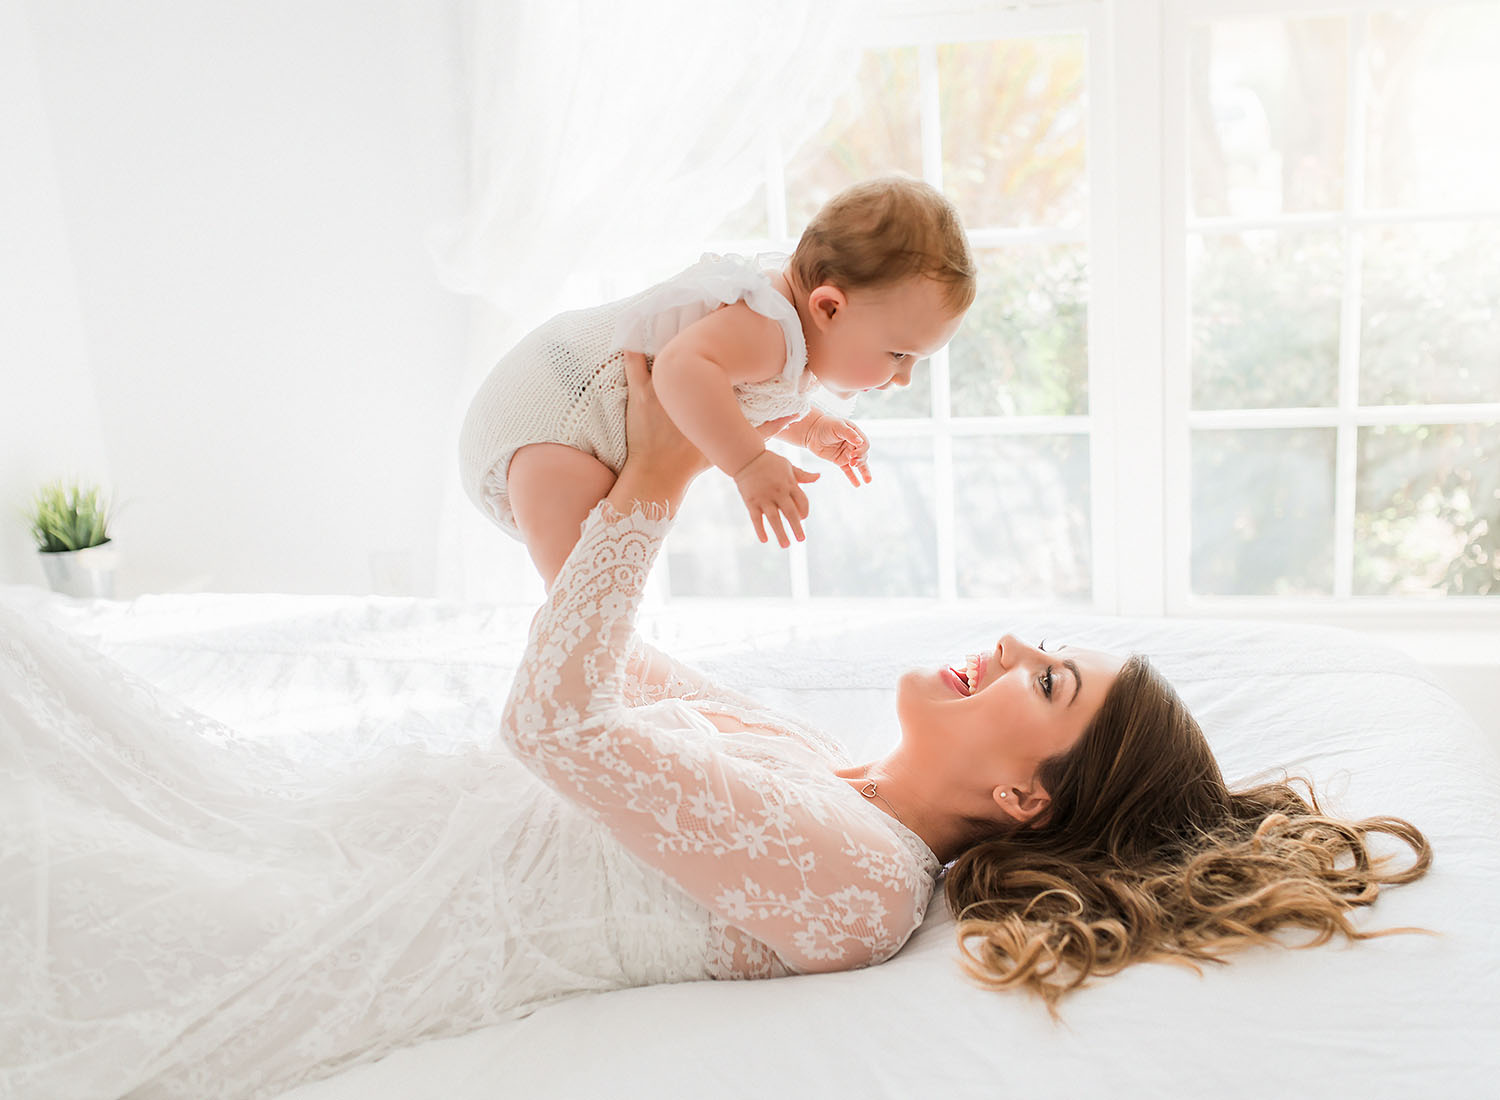 motherhood-mommy-and-me-mothersday-sweet-baby-photos-photography-pictures-richmond-hill-savannah-ga4.jpg